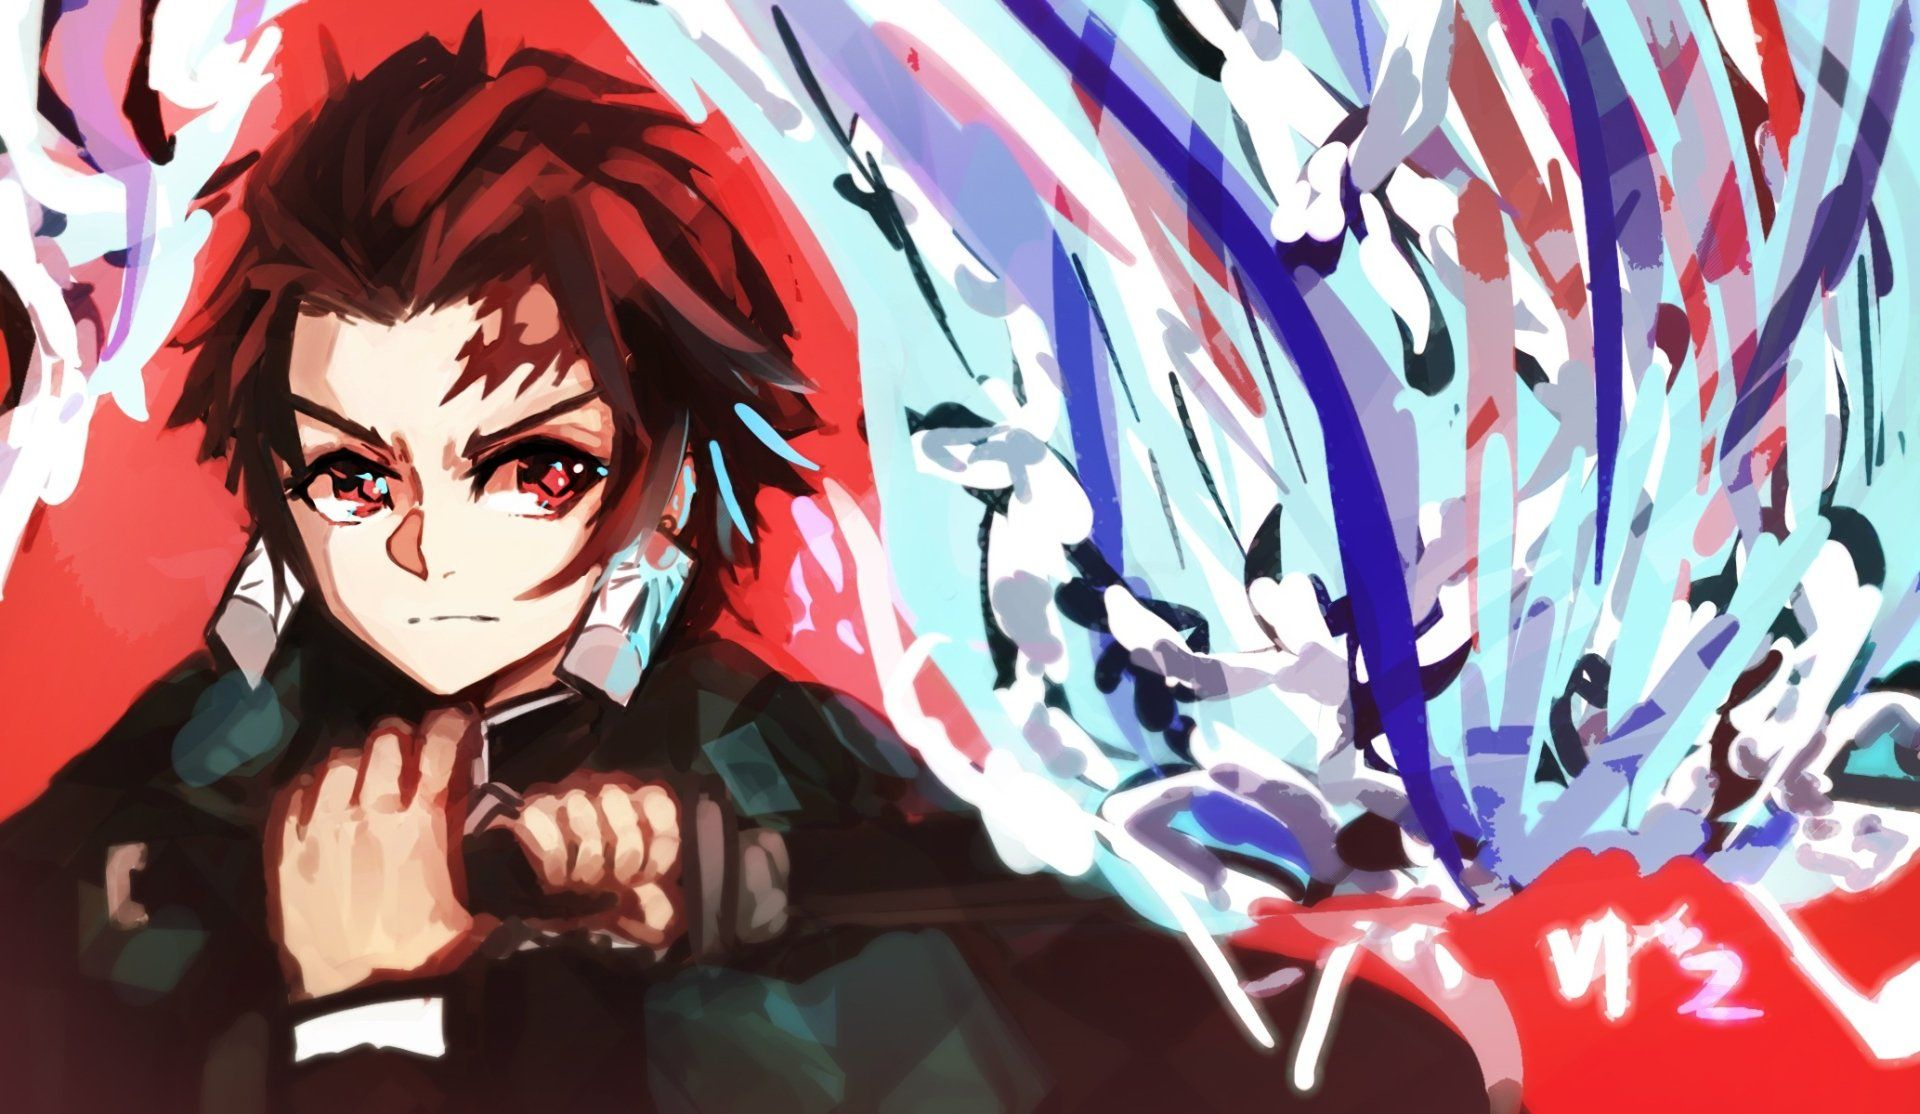 Anime Demon Slayer Kimetsu No Yaiba Tanjirou Kamado Wallpaper